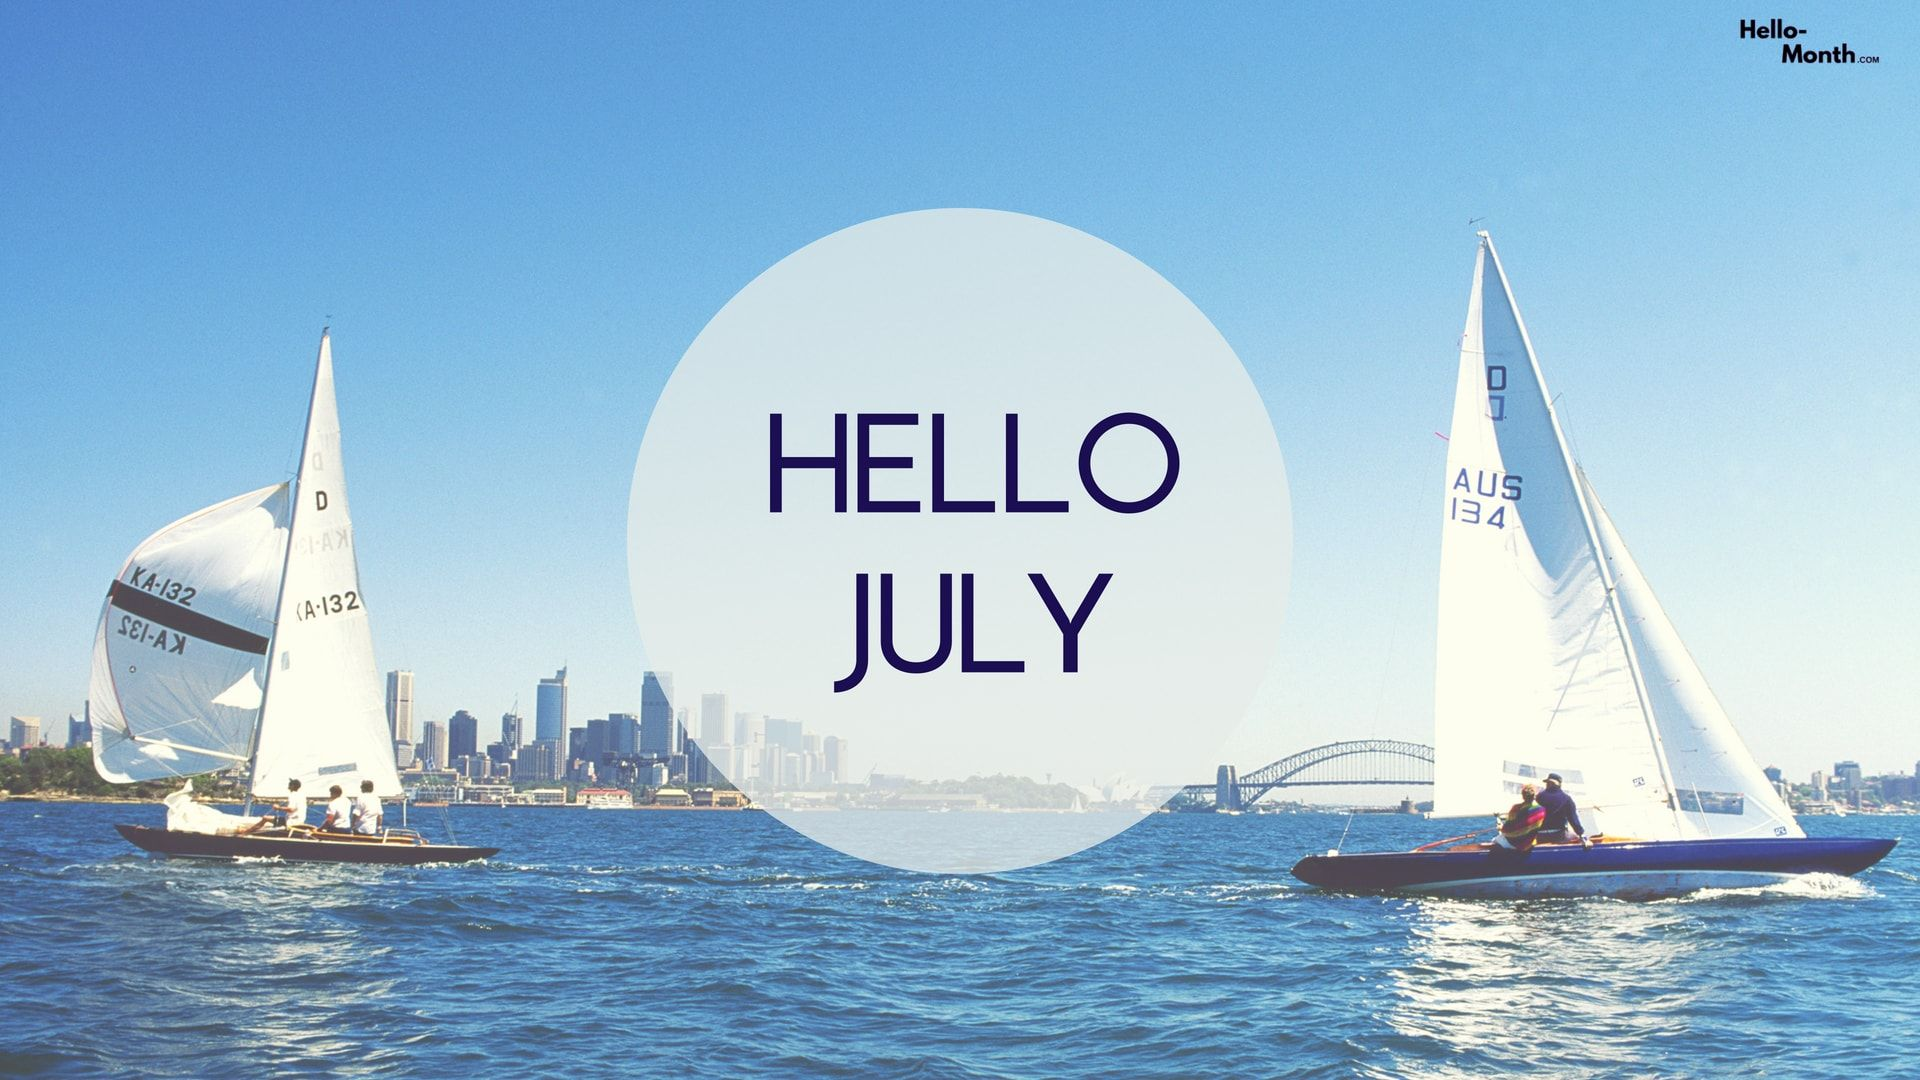 1920x1080 Download Hello July HD Images   July Month Top Images